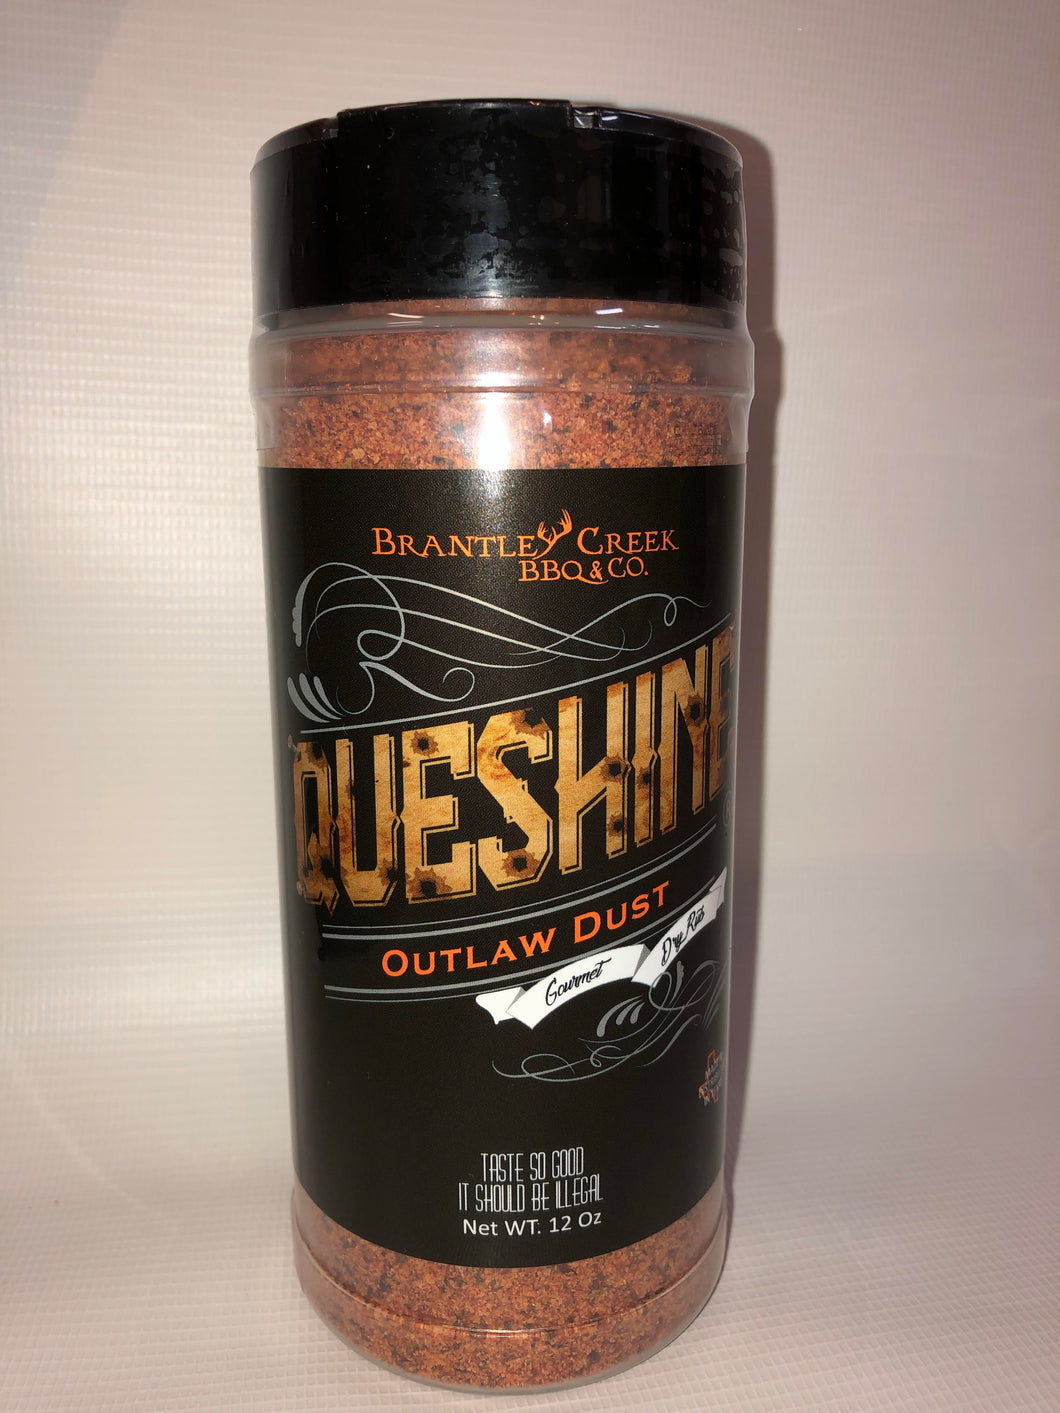 Queshine Outlaw Dust